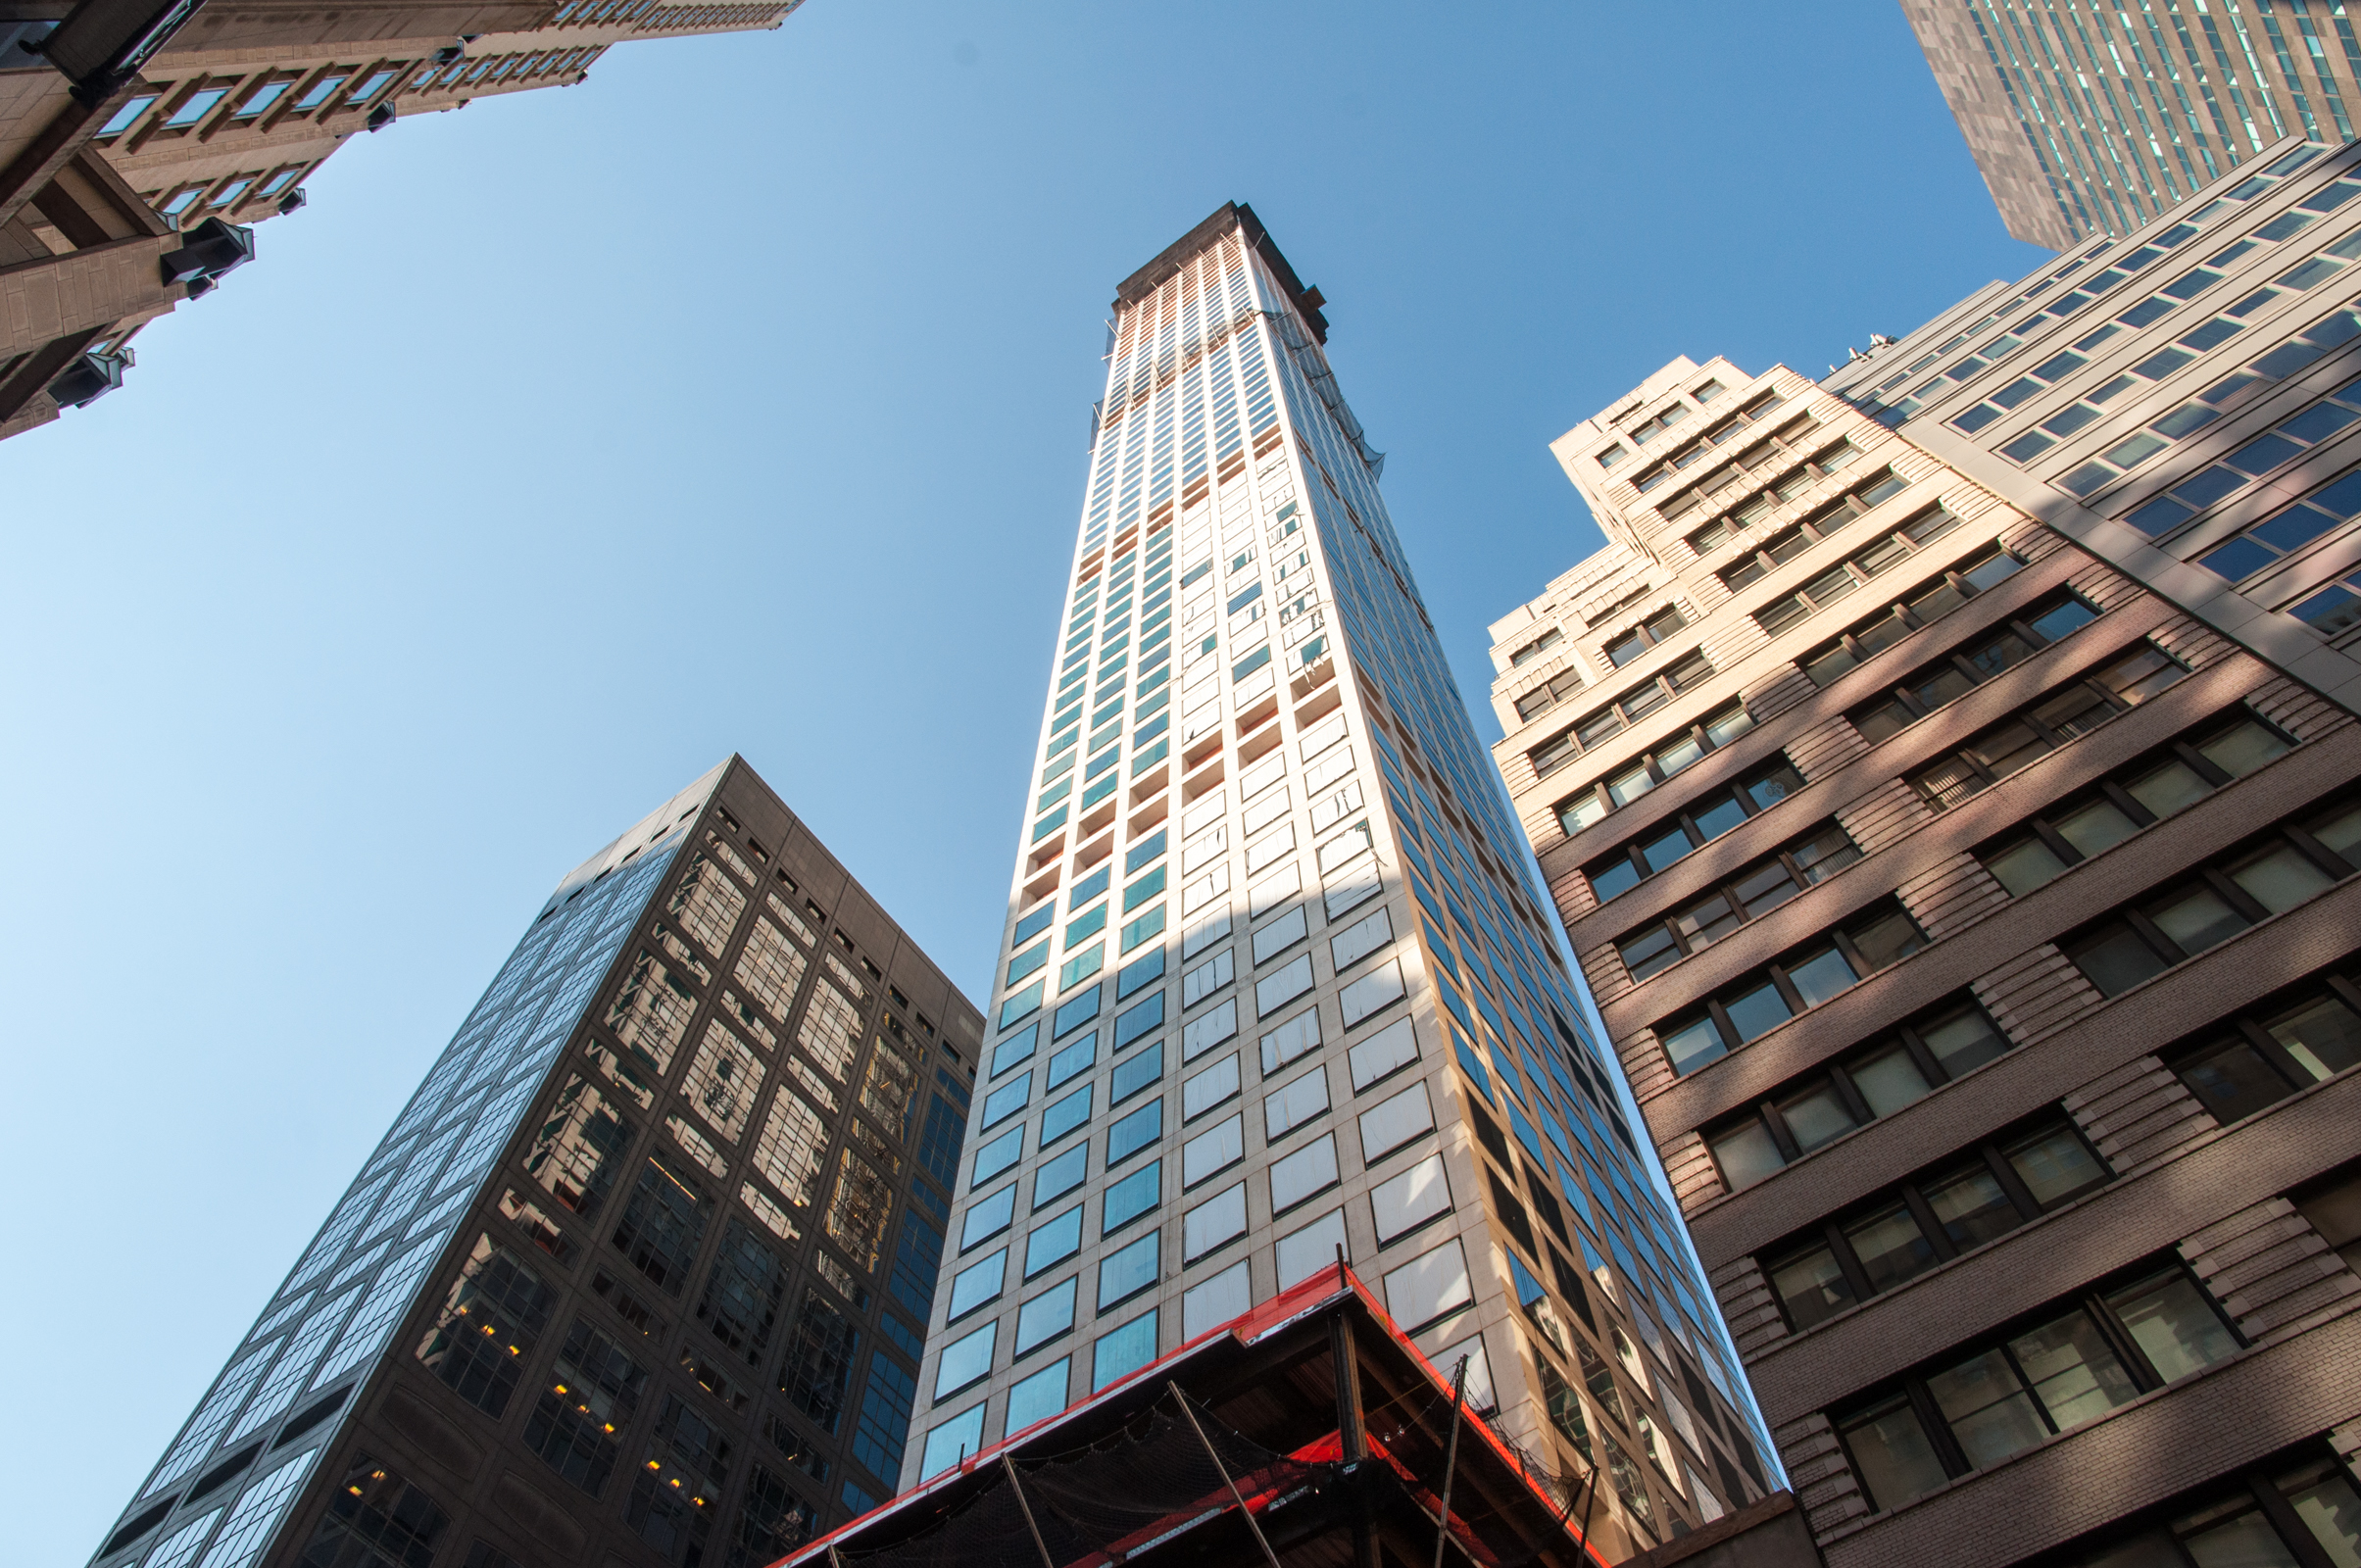 The northwest corner of the tower from East 57th Street.